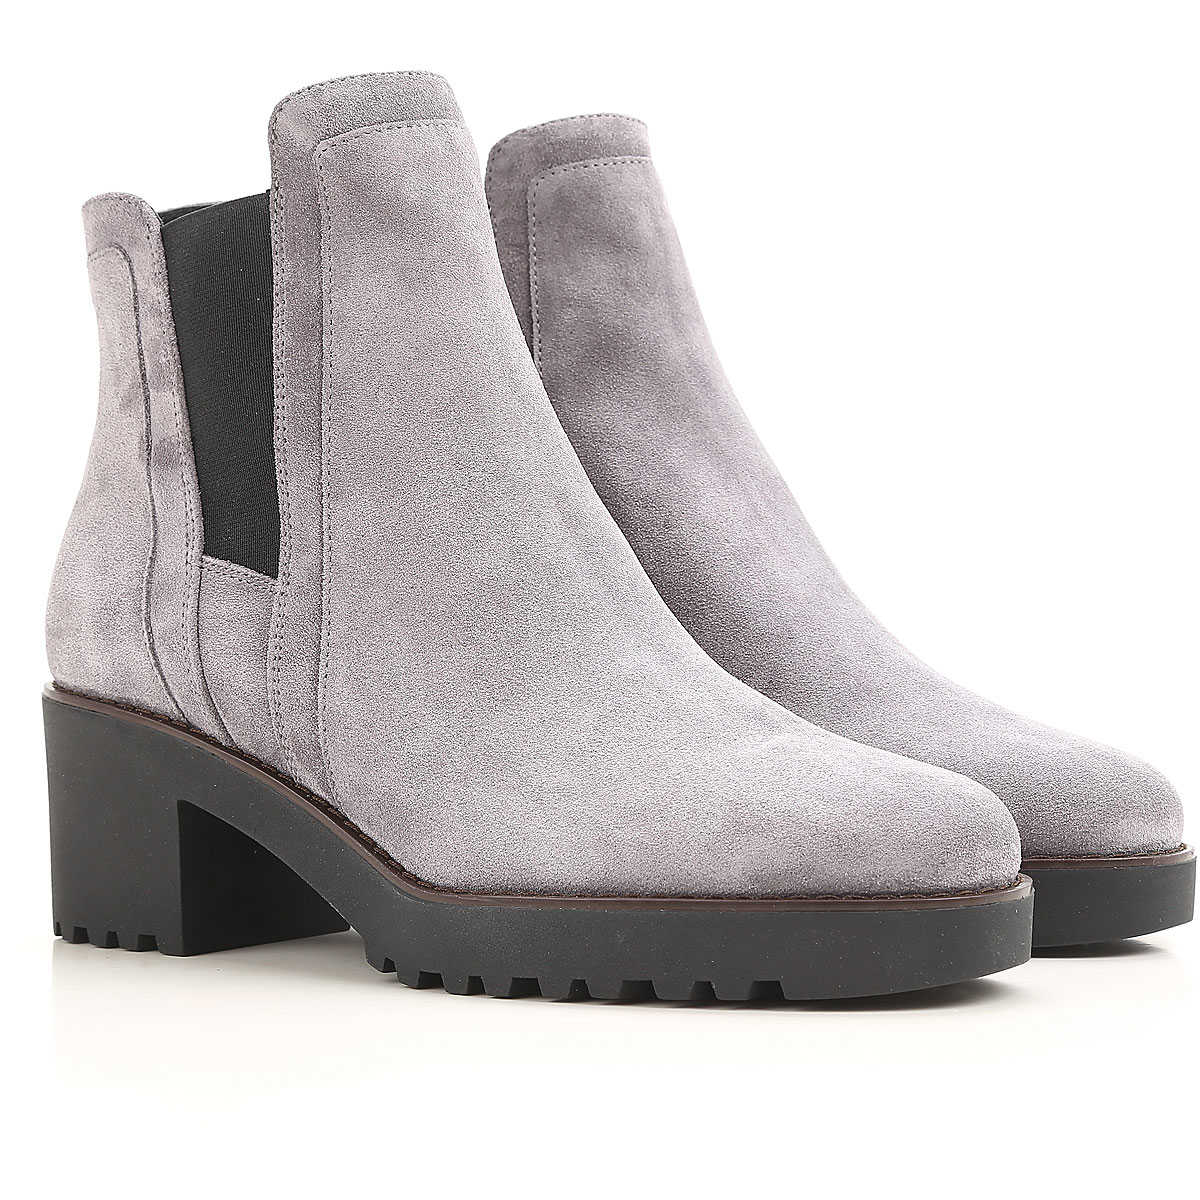 Hogan Boots for Women Booties On Sale SE - GOOFASH